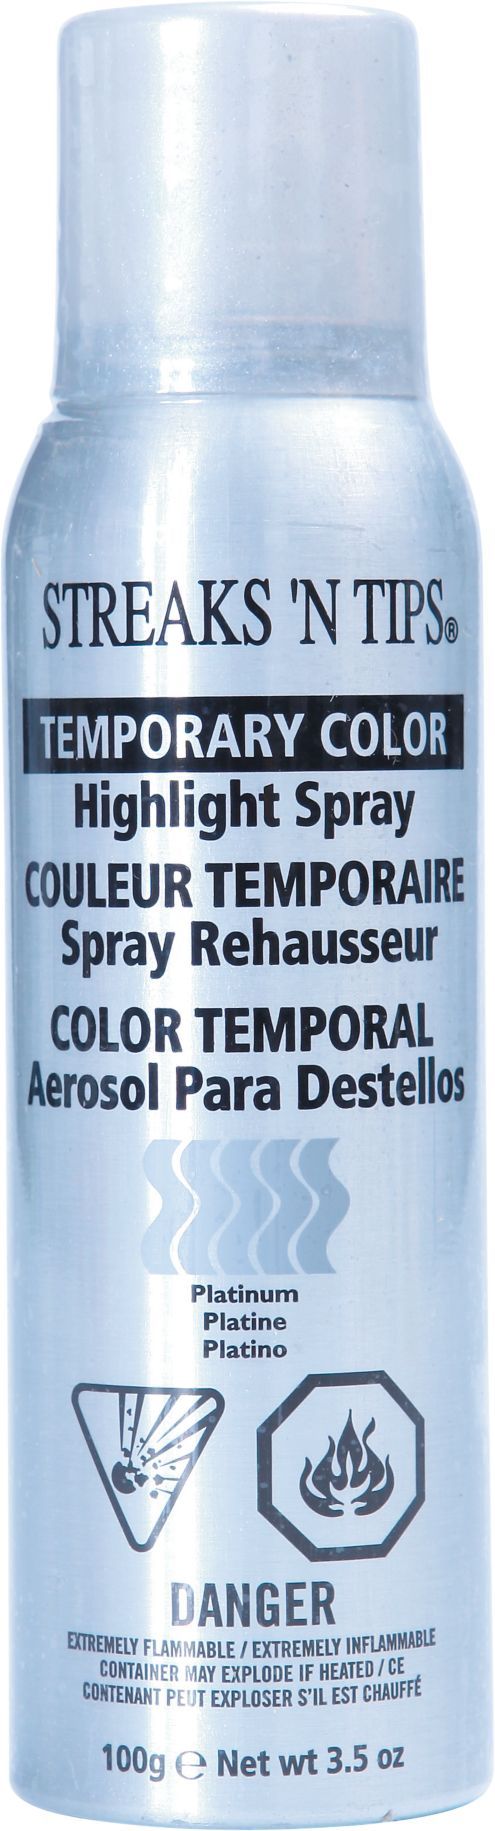 streaks n tips temporary color highlight spray